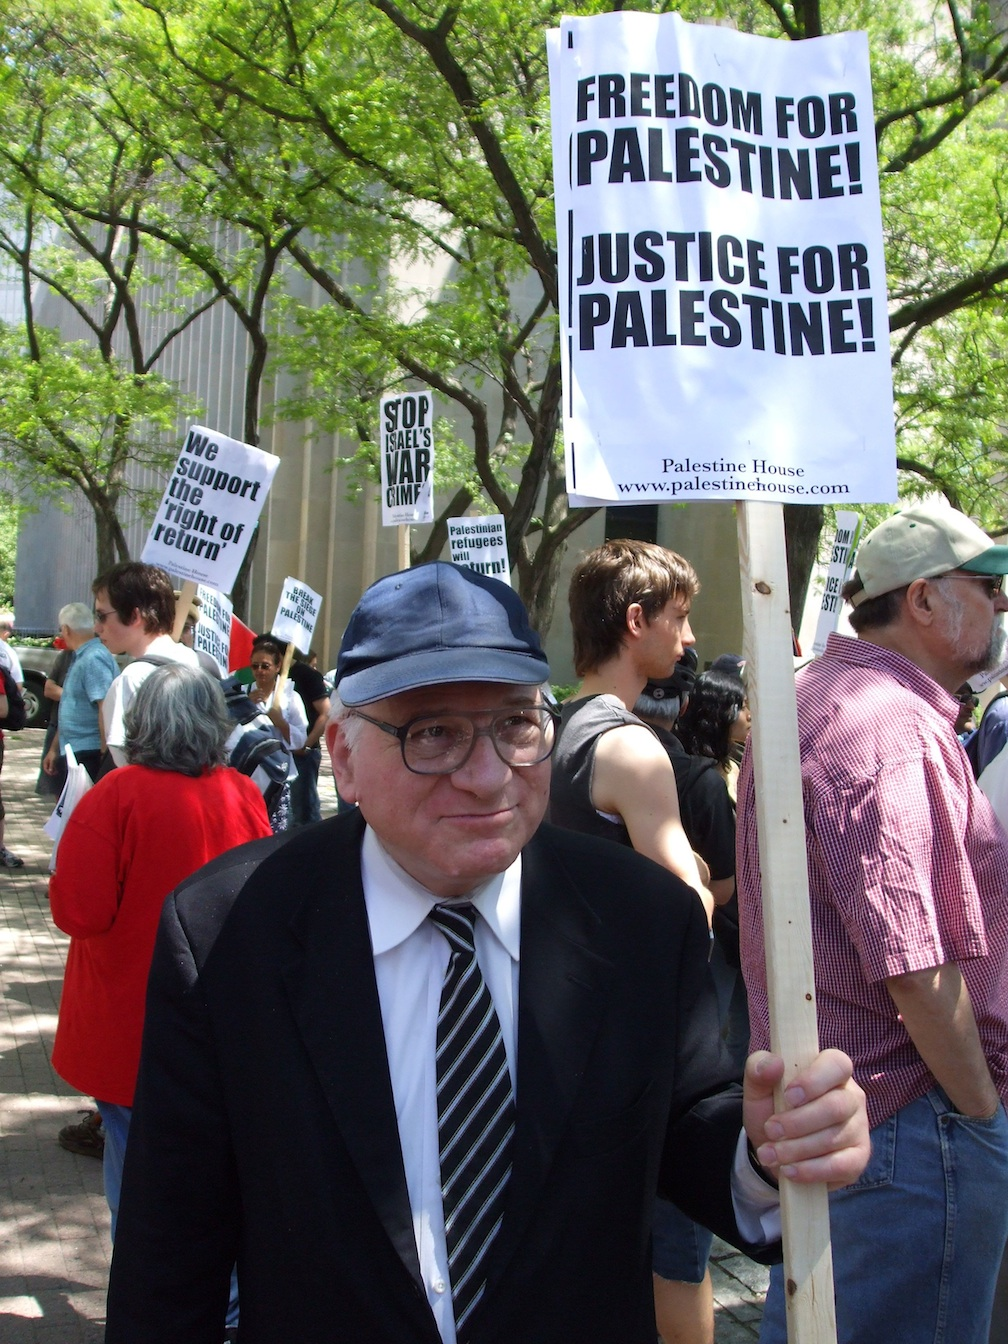 """Click photo to download. Caption: Danny Goldstick holding a """"Freedom For Palestine!"""" sign at a demonstration accusing Israel of apartheid. The New Israel Fund has cut off funding to several groups that demonize Israel, but has continued to fund others, according to JNS columnist Gerald Steinberg. Credit: Johan1917/Wikimedia Commons."""